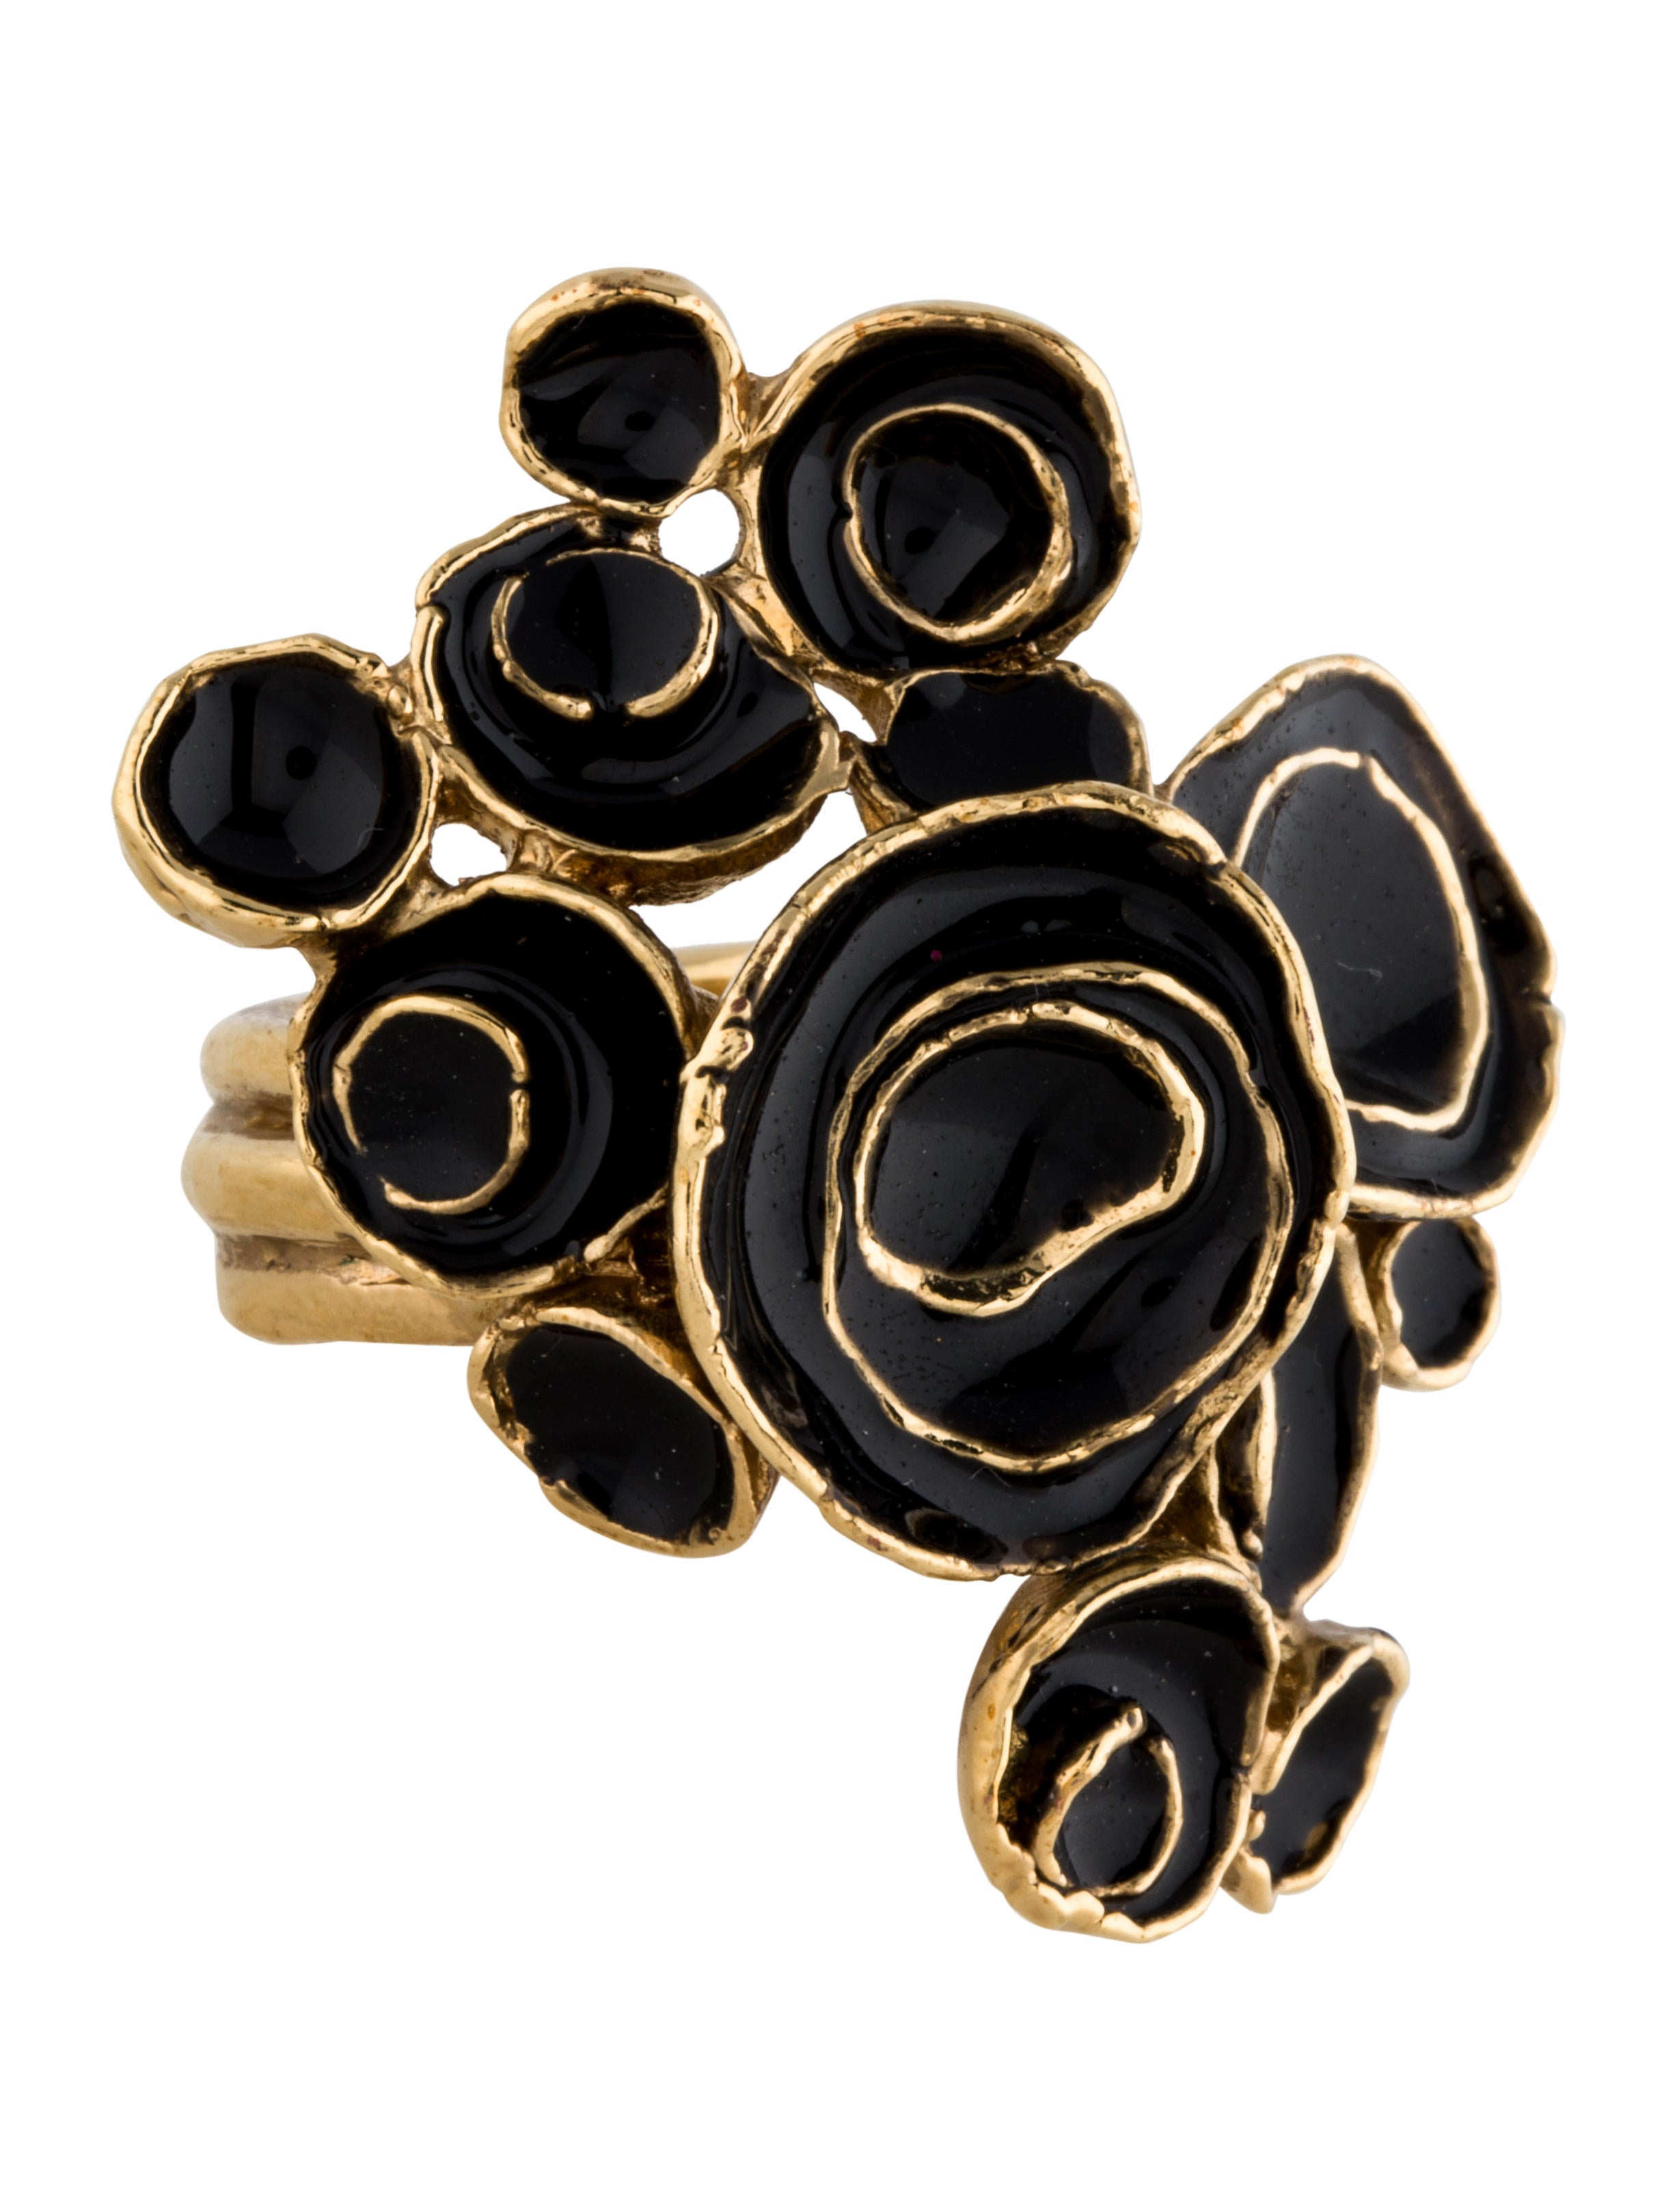 laurent fashionably products costume yves gold engagement saint arty ring rings metal image yours